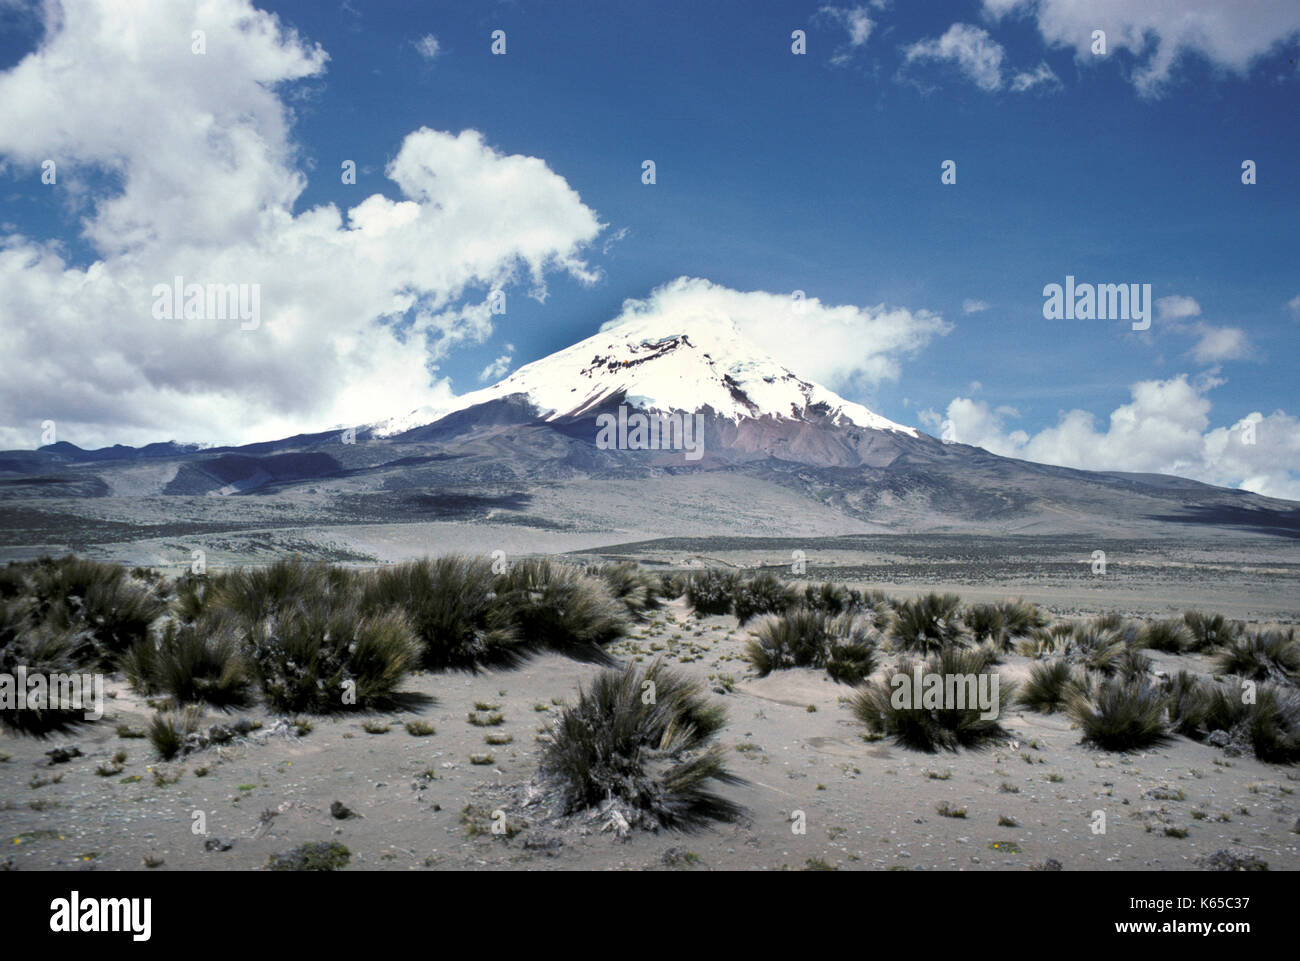 Chimborazo Volcano, Ecuador, High Plateau, South America, currently inactive stratovolcano located in the Cordillera Occidental range of the Andes, hi - Stock Image